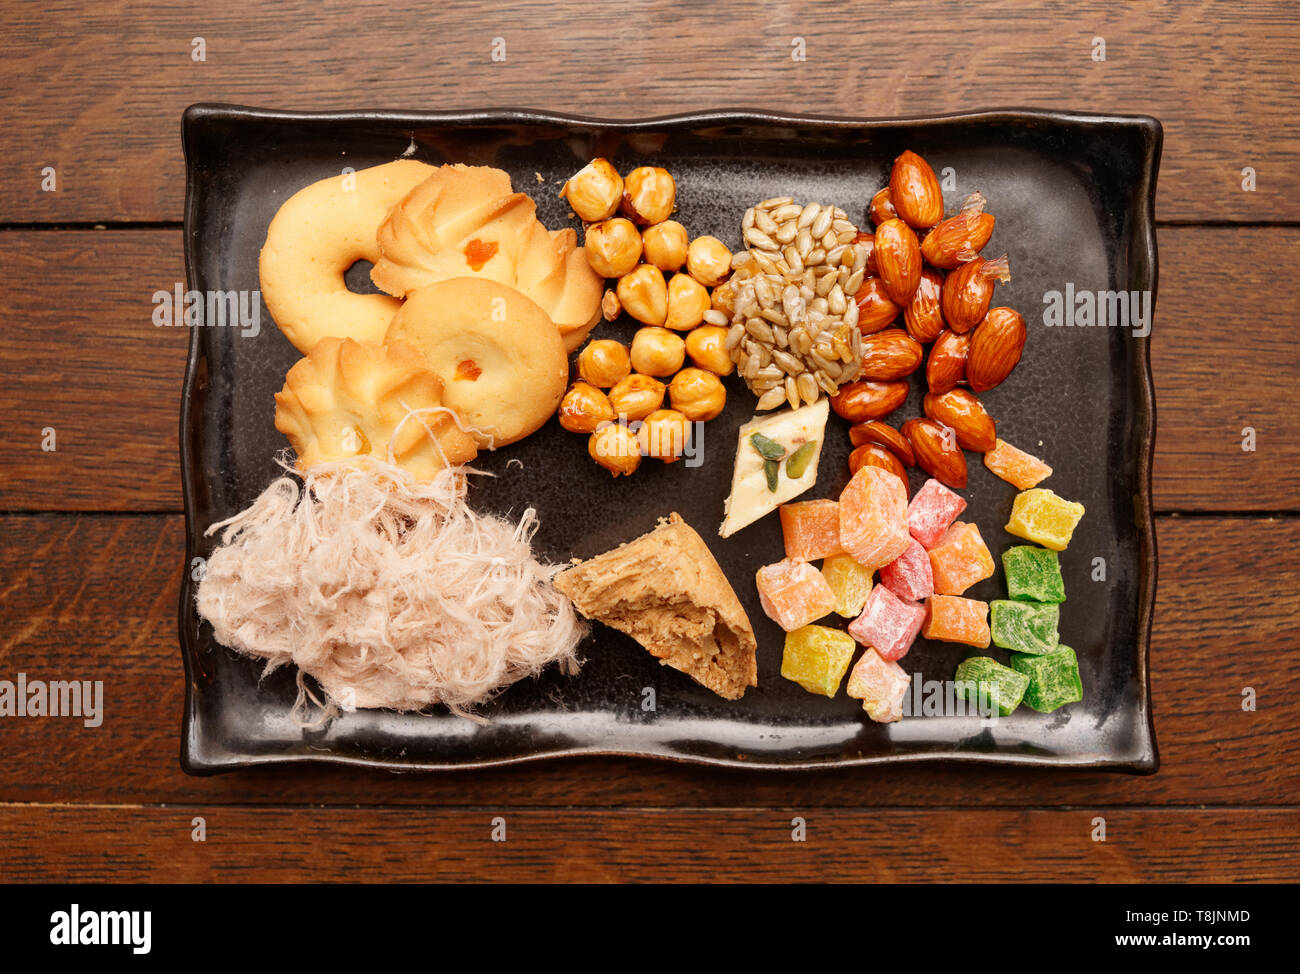 Oriental sweets on plate shot from above - Stock Image